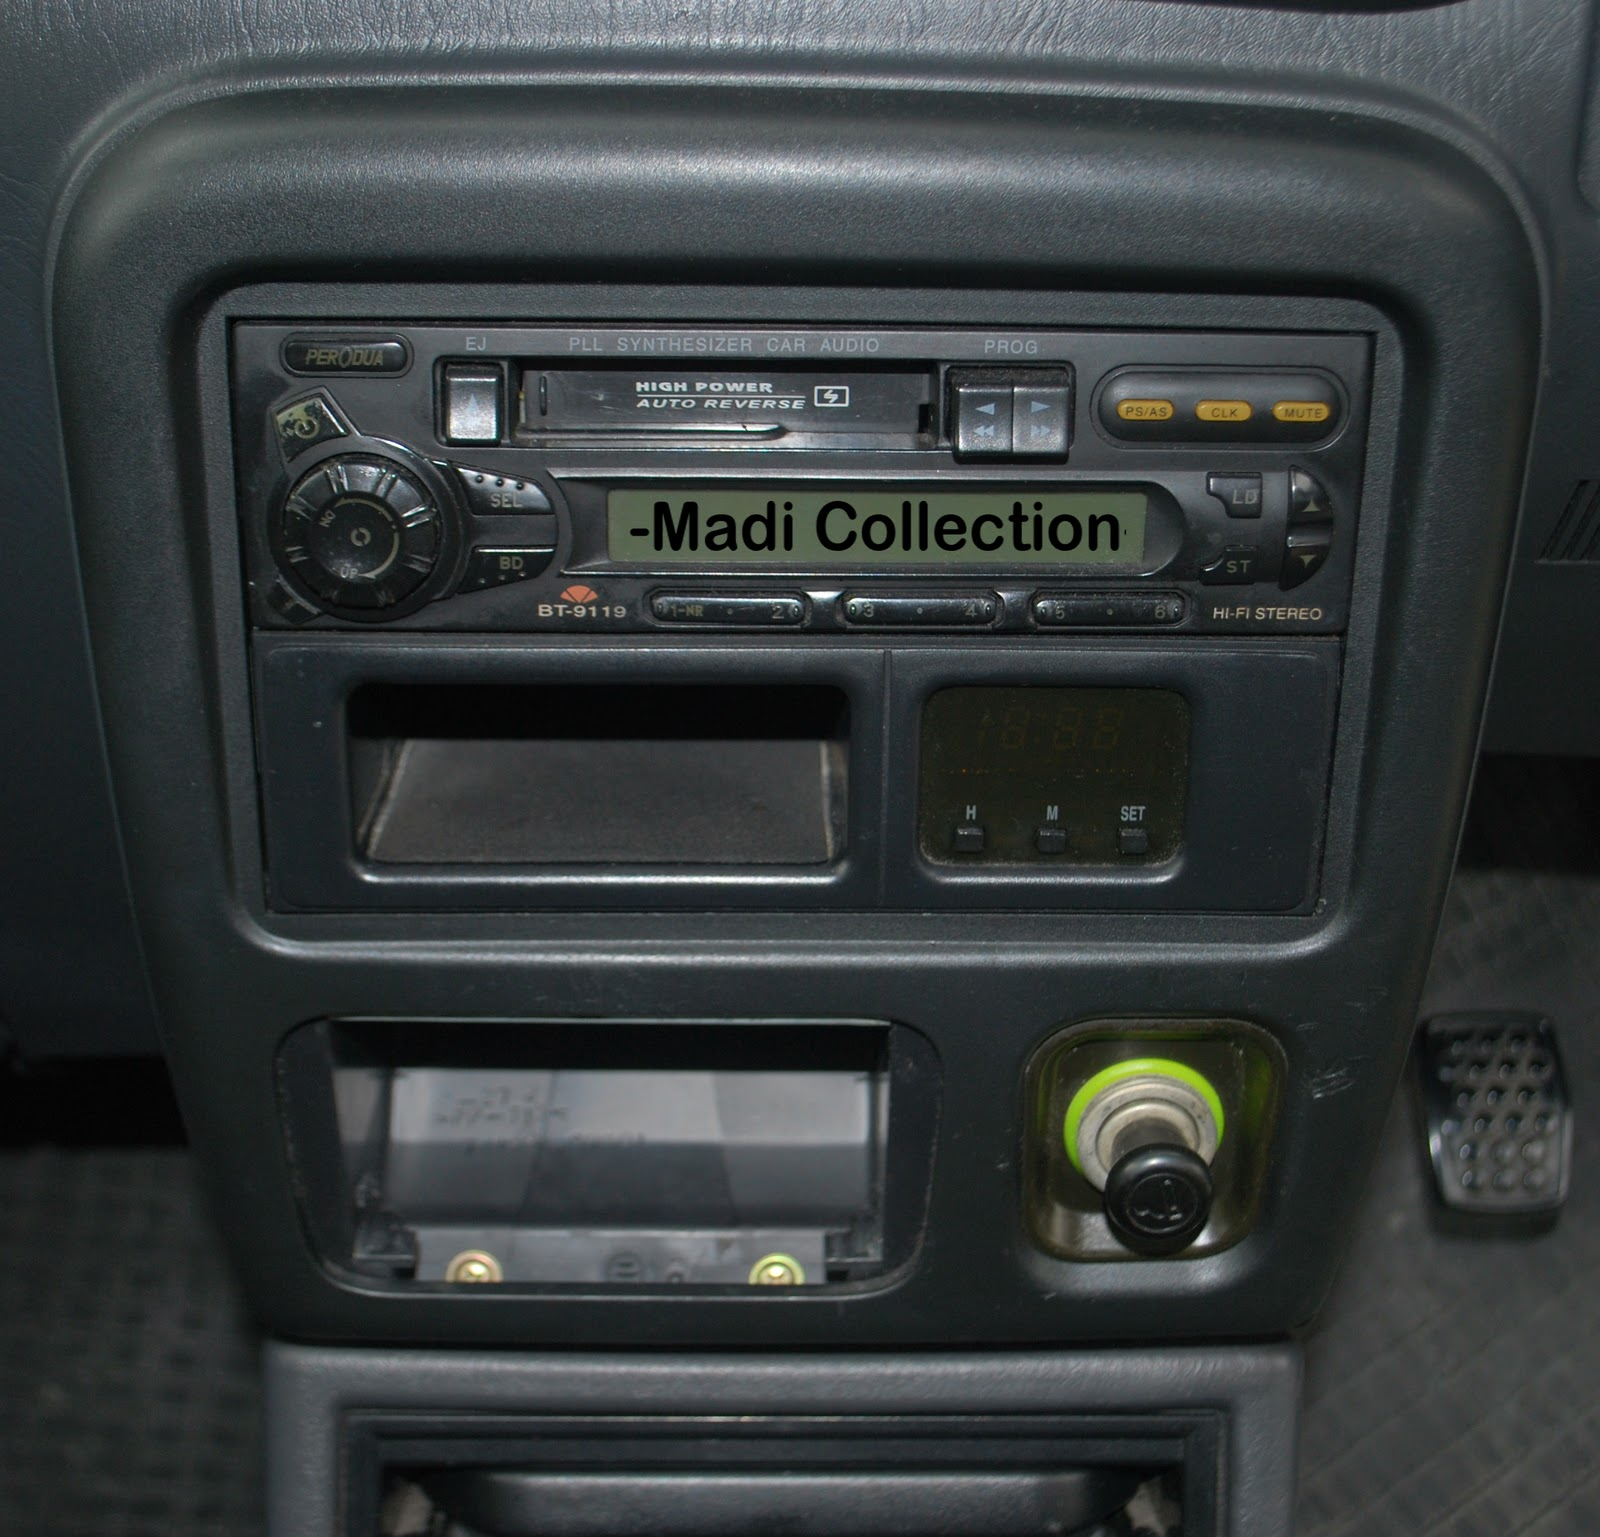 Diy  Fix On Your Own  Kelisa Radio Cover Removal From Dashboard